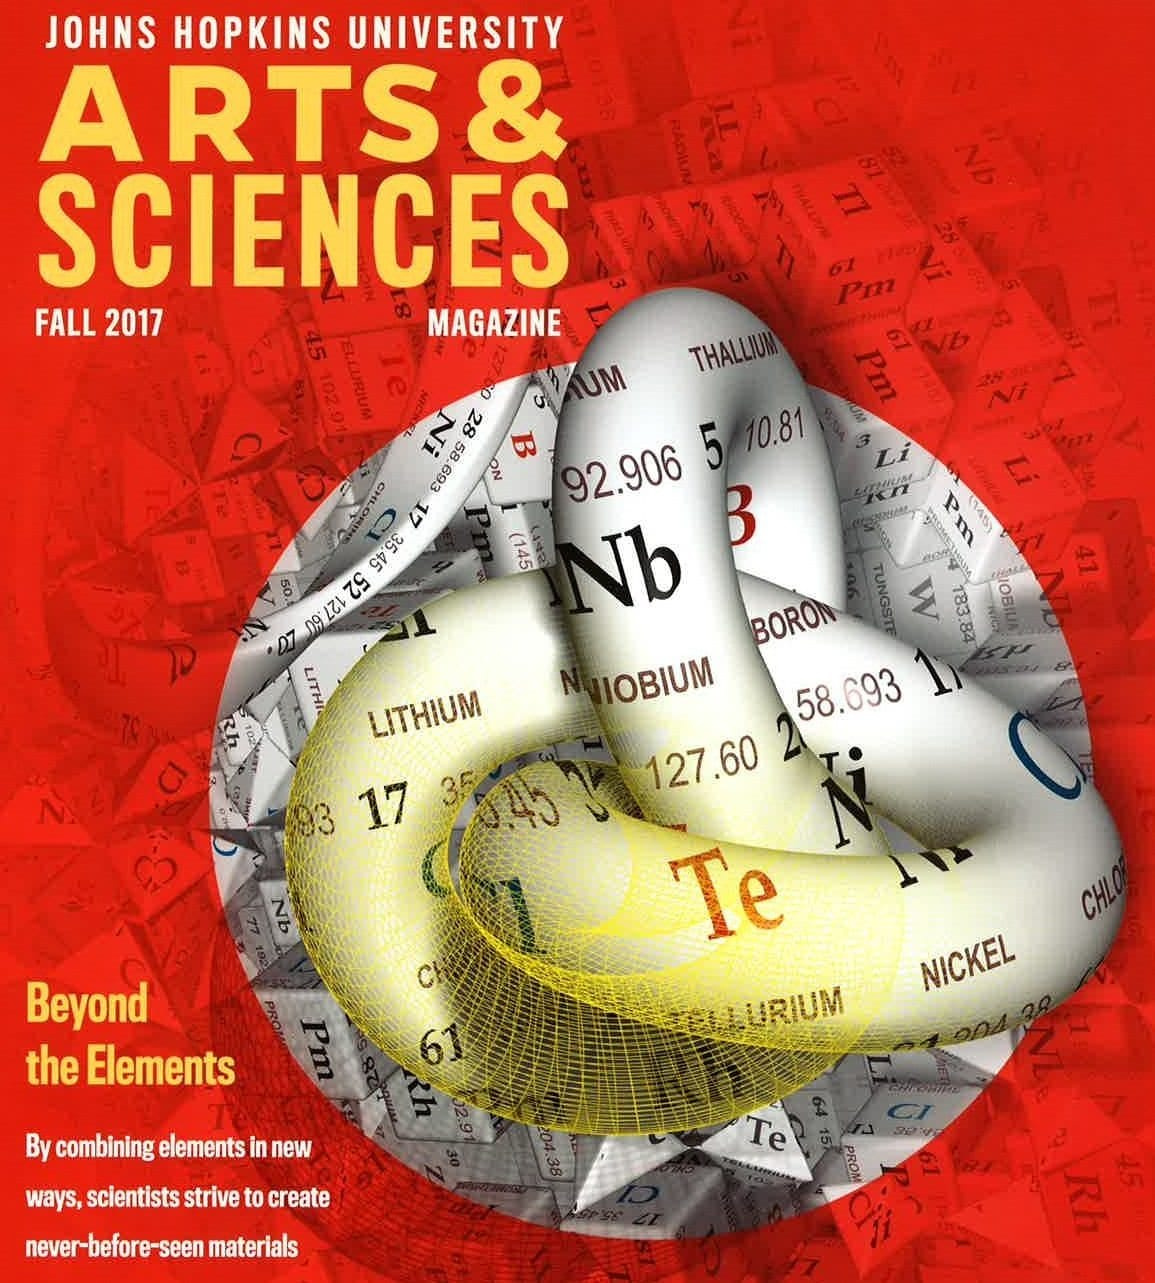 Sociology Faculty in JHU Arts & Sciences Magazine